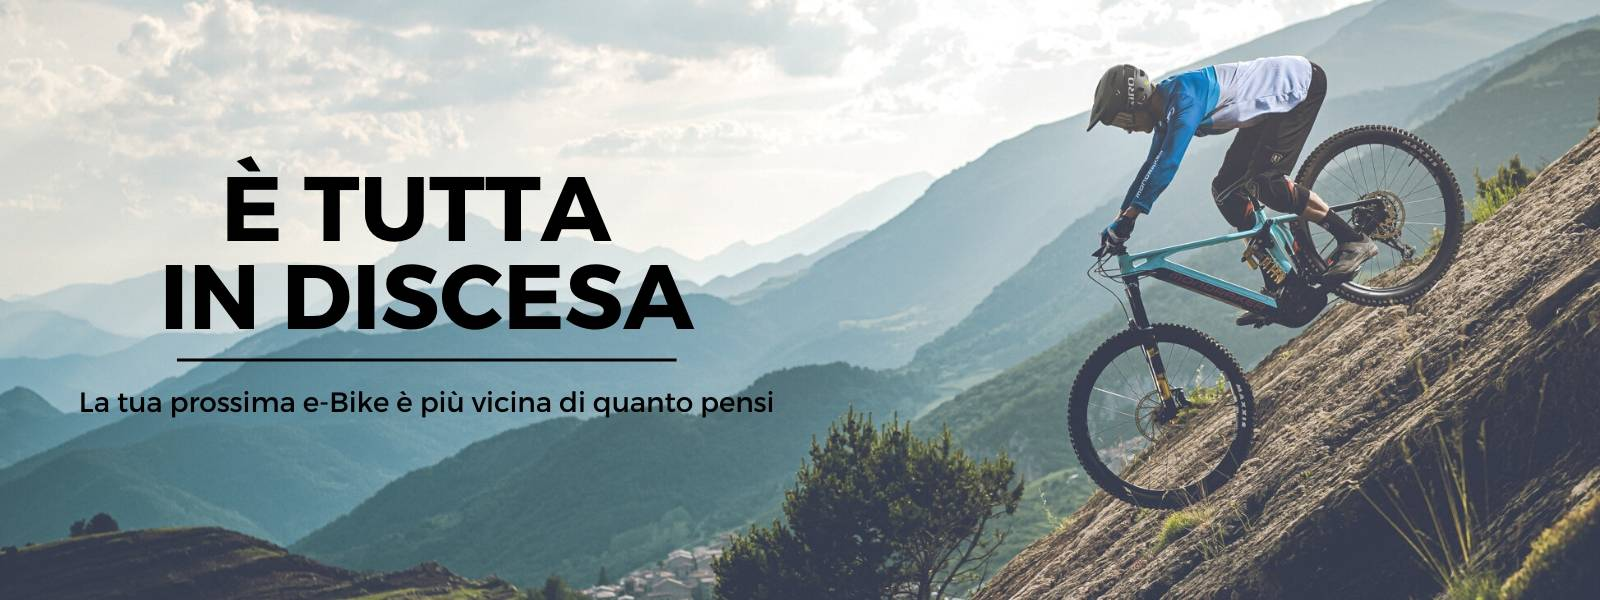 Contact us to receive a personalized quote, a bike test or simply a consultation